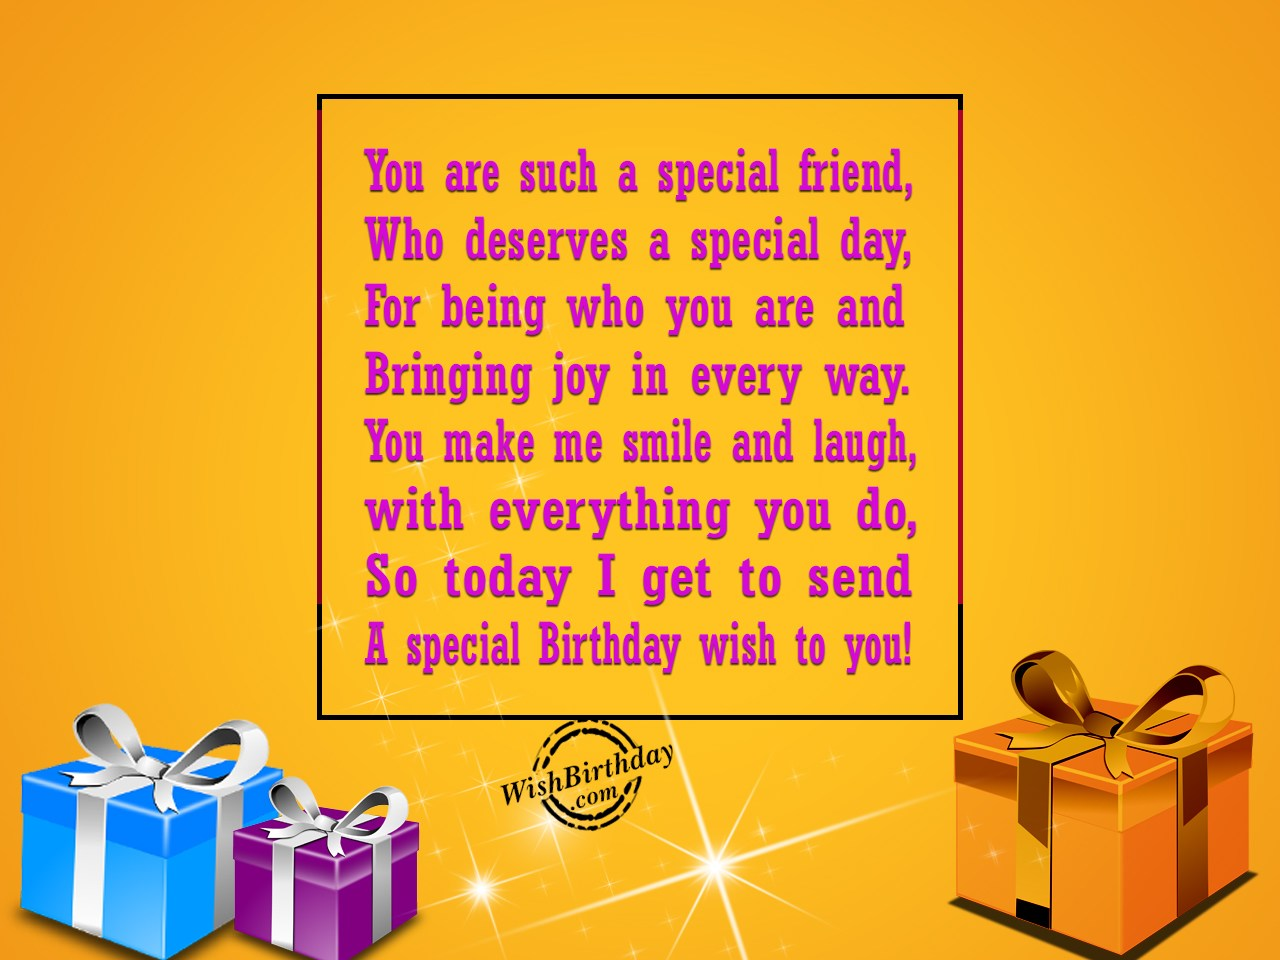 You Are A Special Friend Of Mine - WishBirthday.com